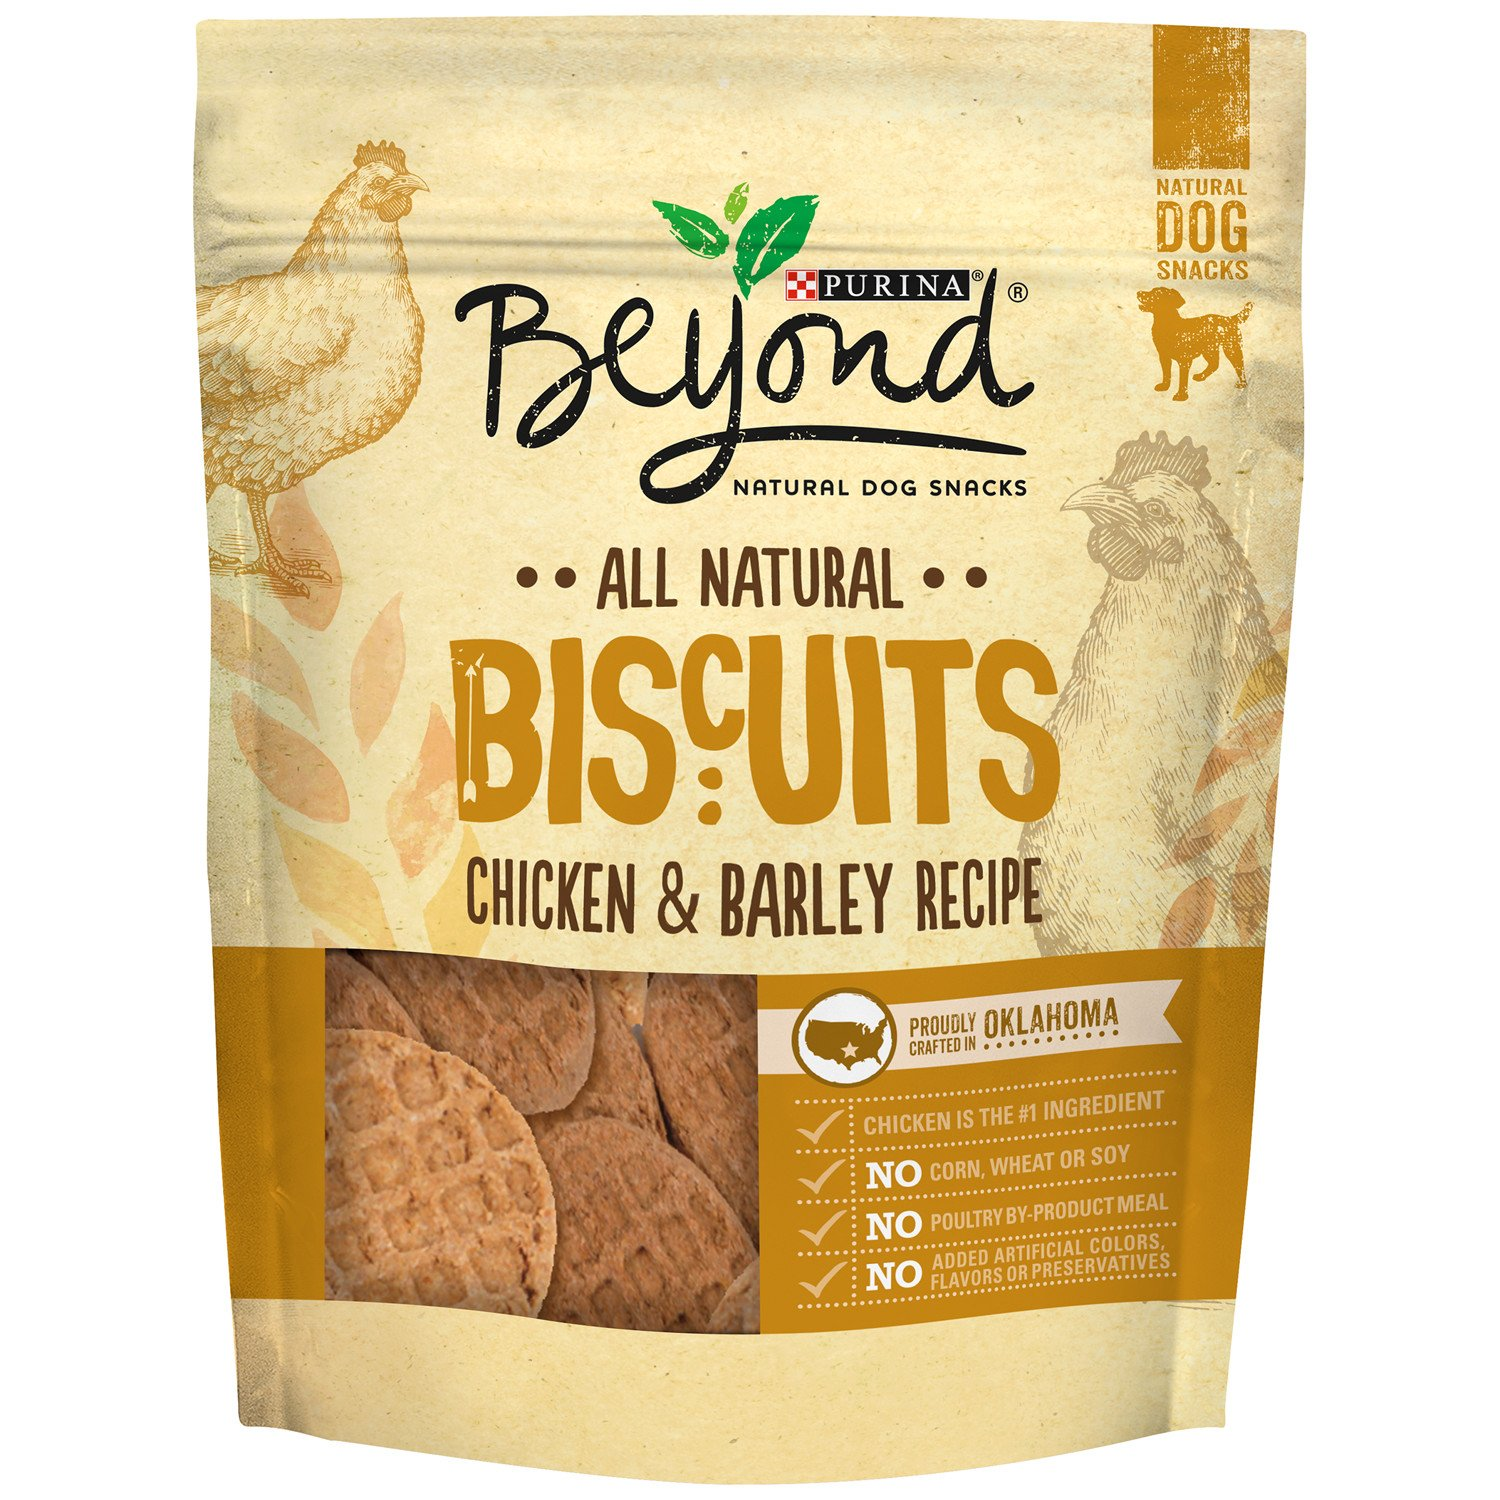 Purina Beyond Natural Dog Snack, Biscuits, Chicken & Barley Recipe, 25-Ounce Pouch, Pack of 1